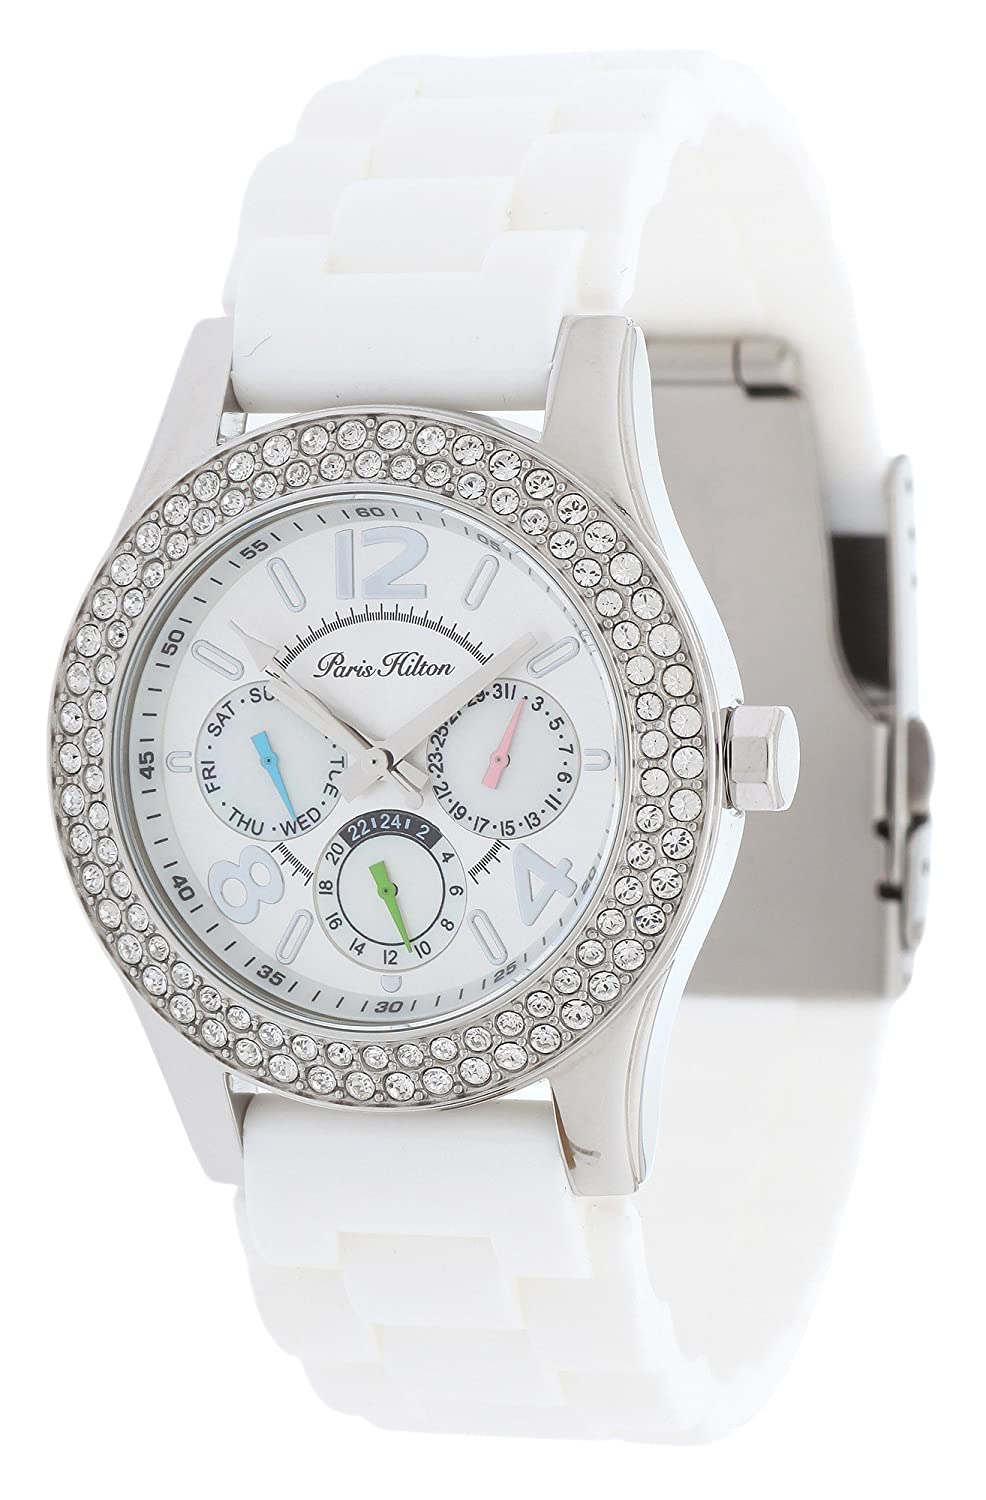 Paris Hilton Damen-Armbanduhr Chronograph Analog Quarz Edelstahl PH11687M